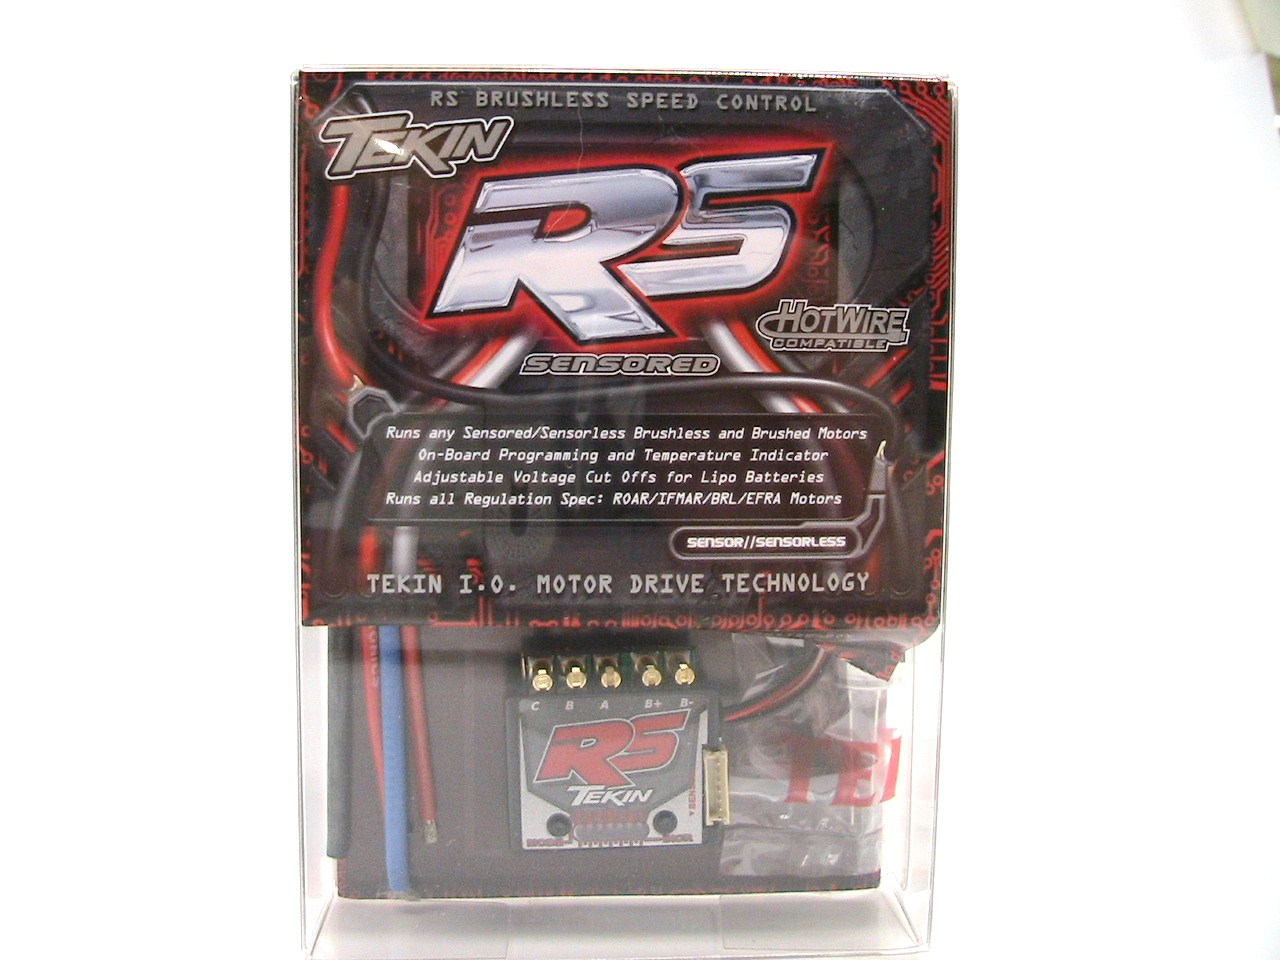 Tekin RS Brushed/Brushless Electronic Speed Control